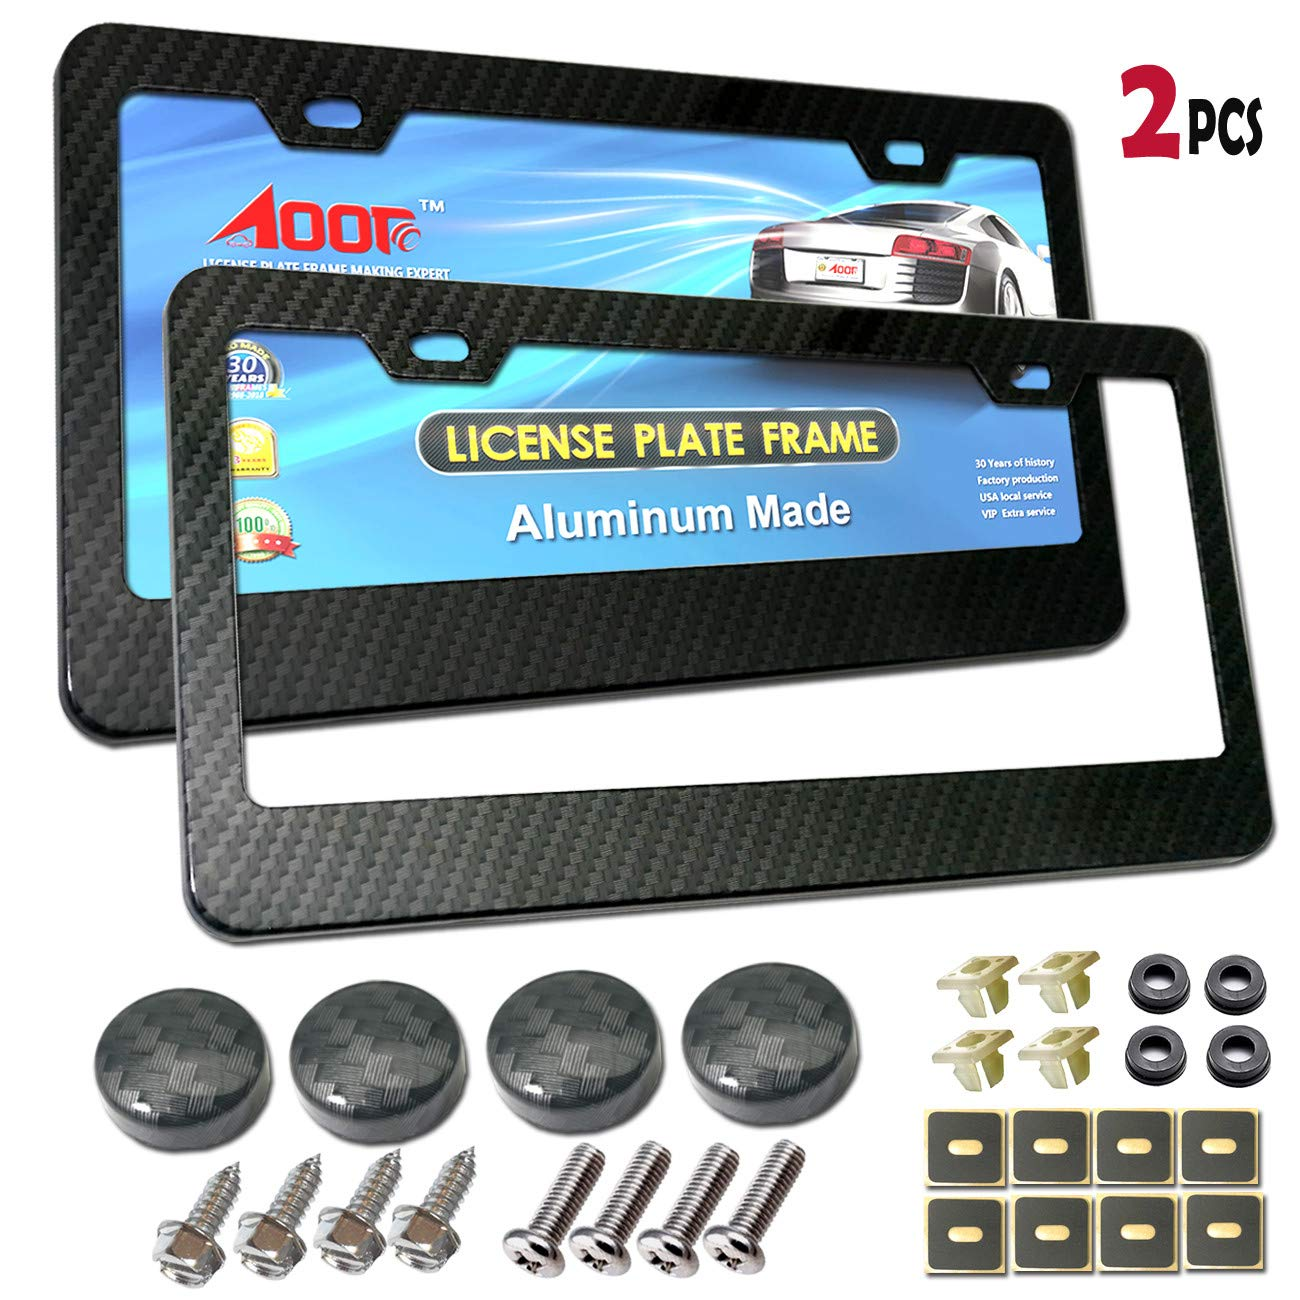 Tamper Resistant 304 Stainless Steel Plate Screws 1//4-20 x 1 Button Head Security Machine Screw and Black License Plate Screw Cover-33 Kits Anti Theft License Plate Screws